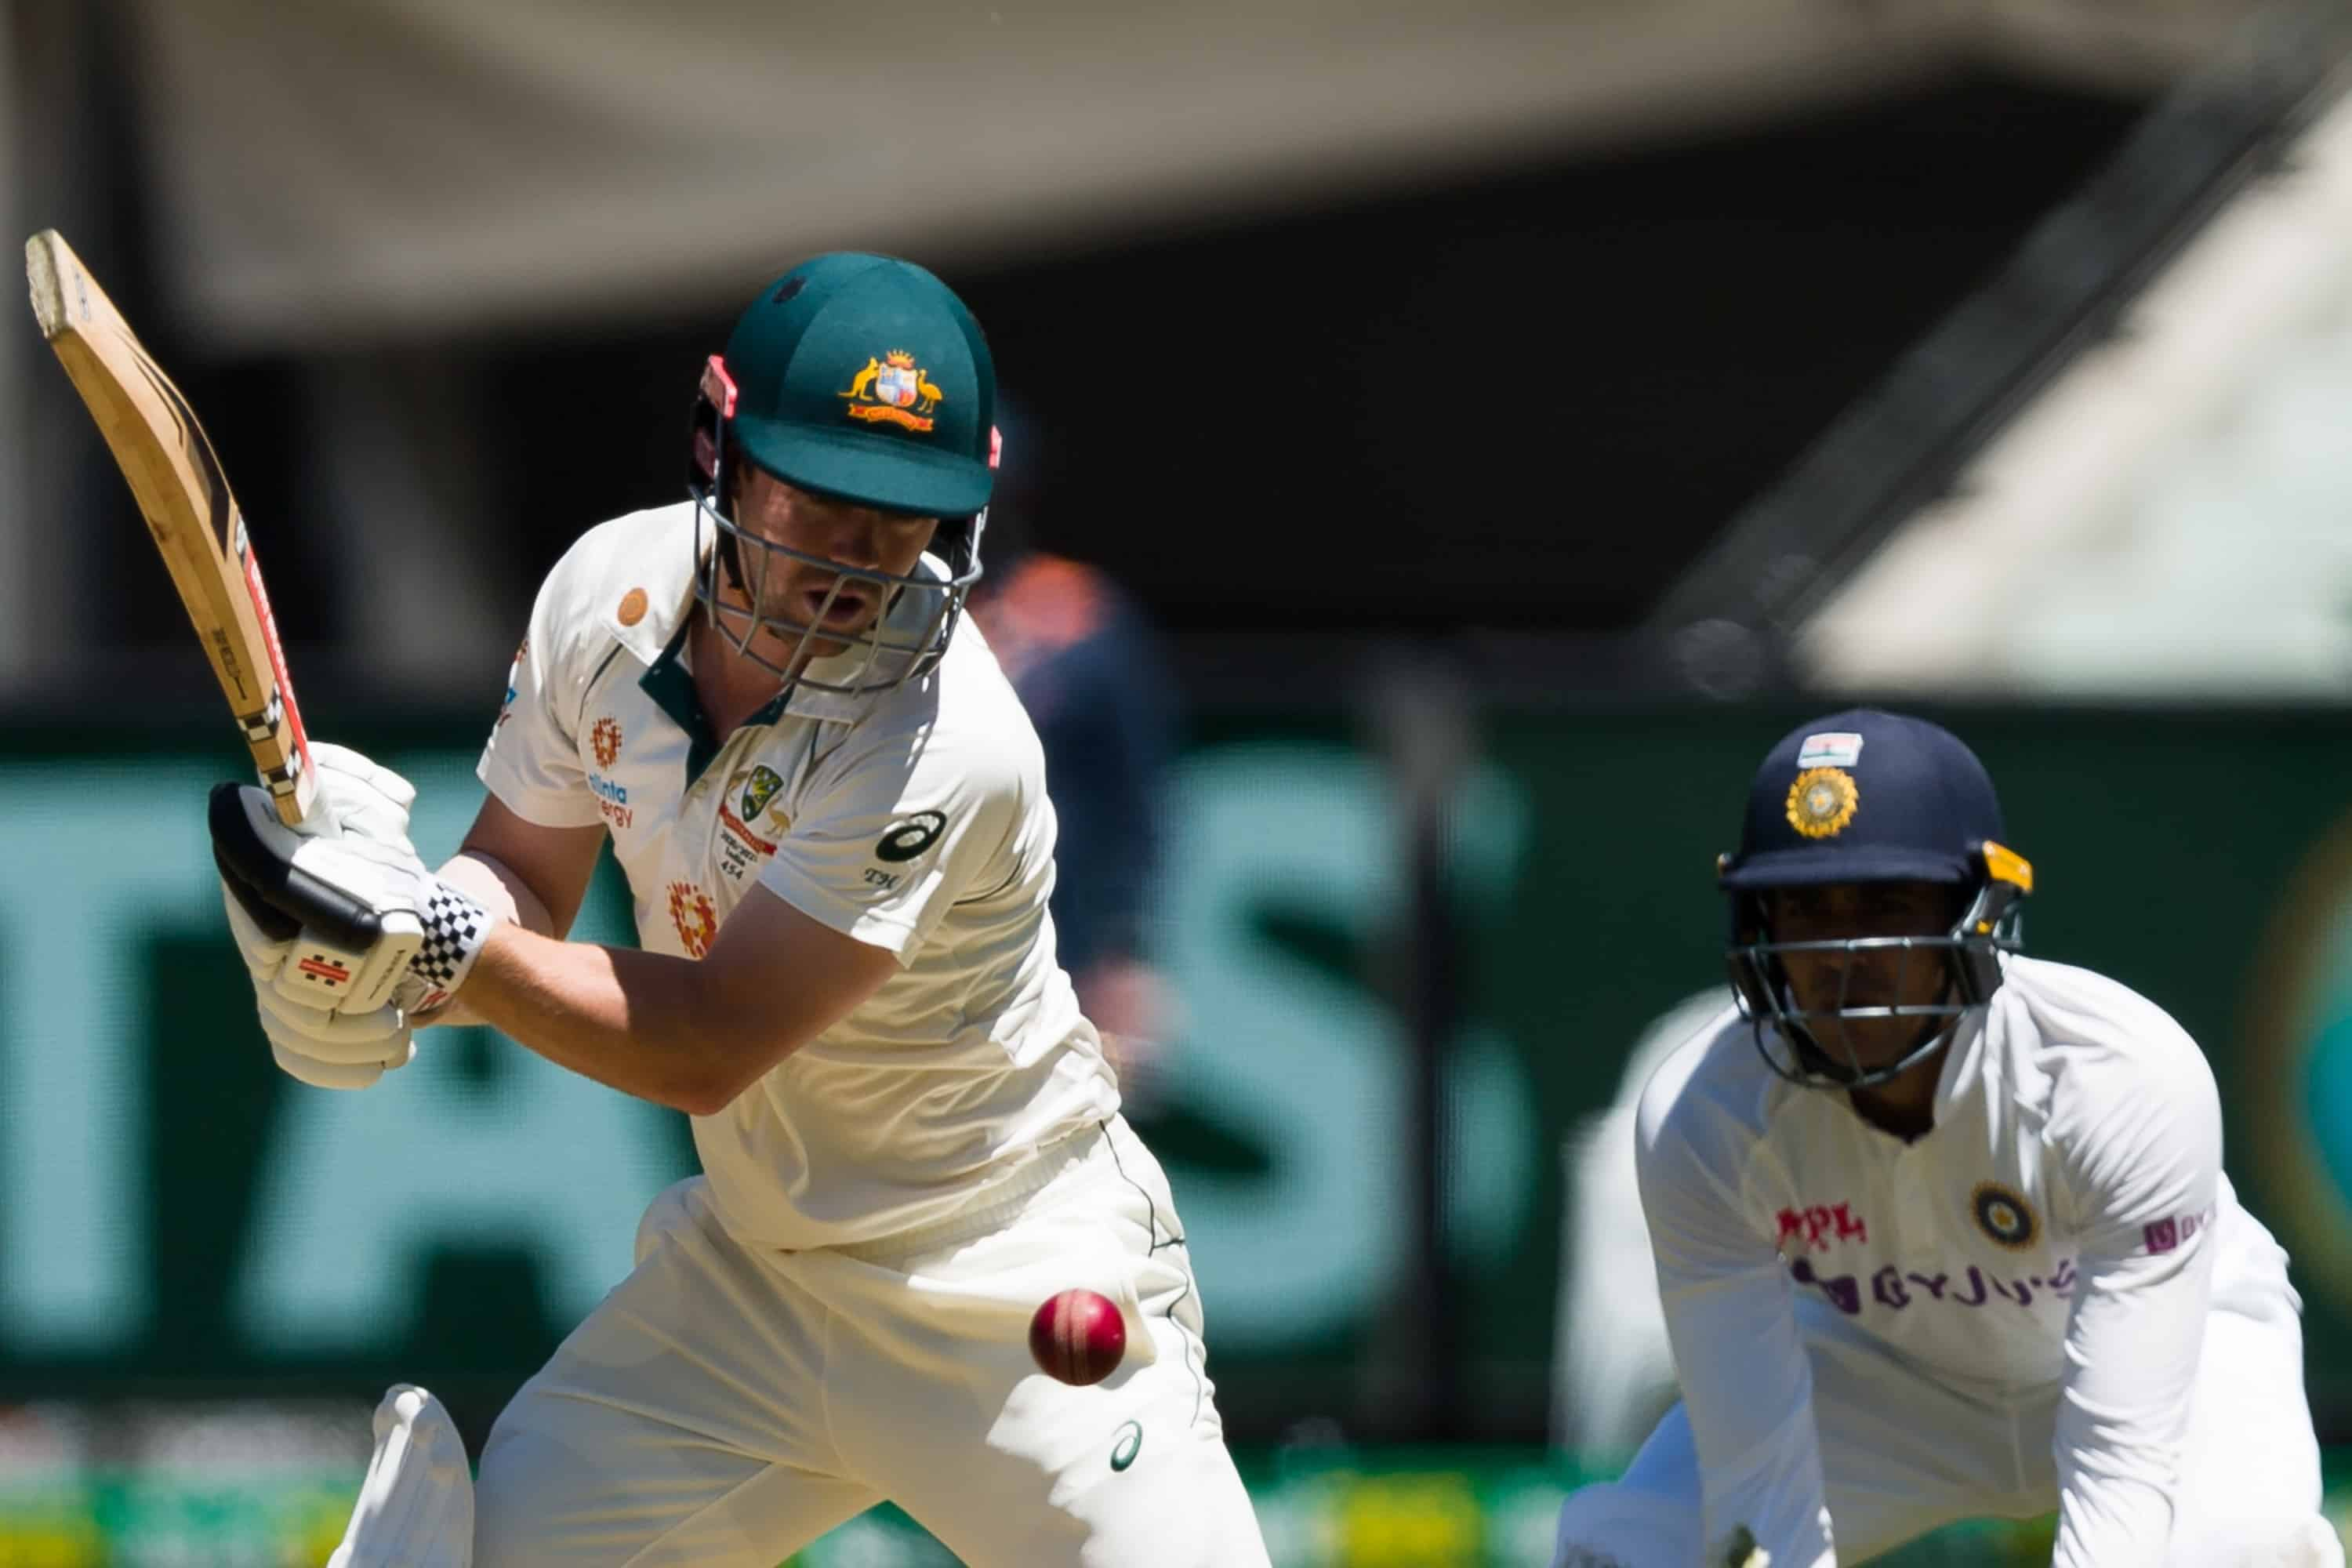 MELBOURNE, AUSTRALIA - DECEMBER 26: Travis Head of Australia bats during day one of the Second Vodafone Test cricket match between Australia and India at the Melbourne Cricket Ground on December 26, 2020 in Melbourne, Australia. (Photo by Dave Hewison/Speed Media/Icon Sportswire)